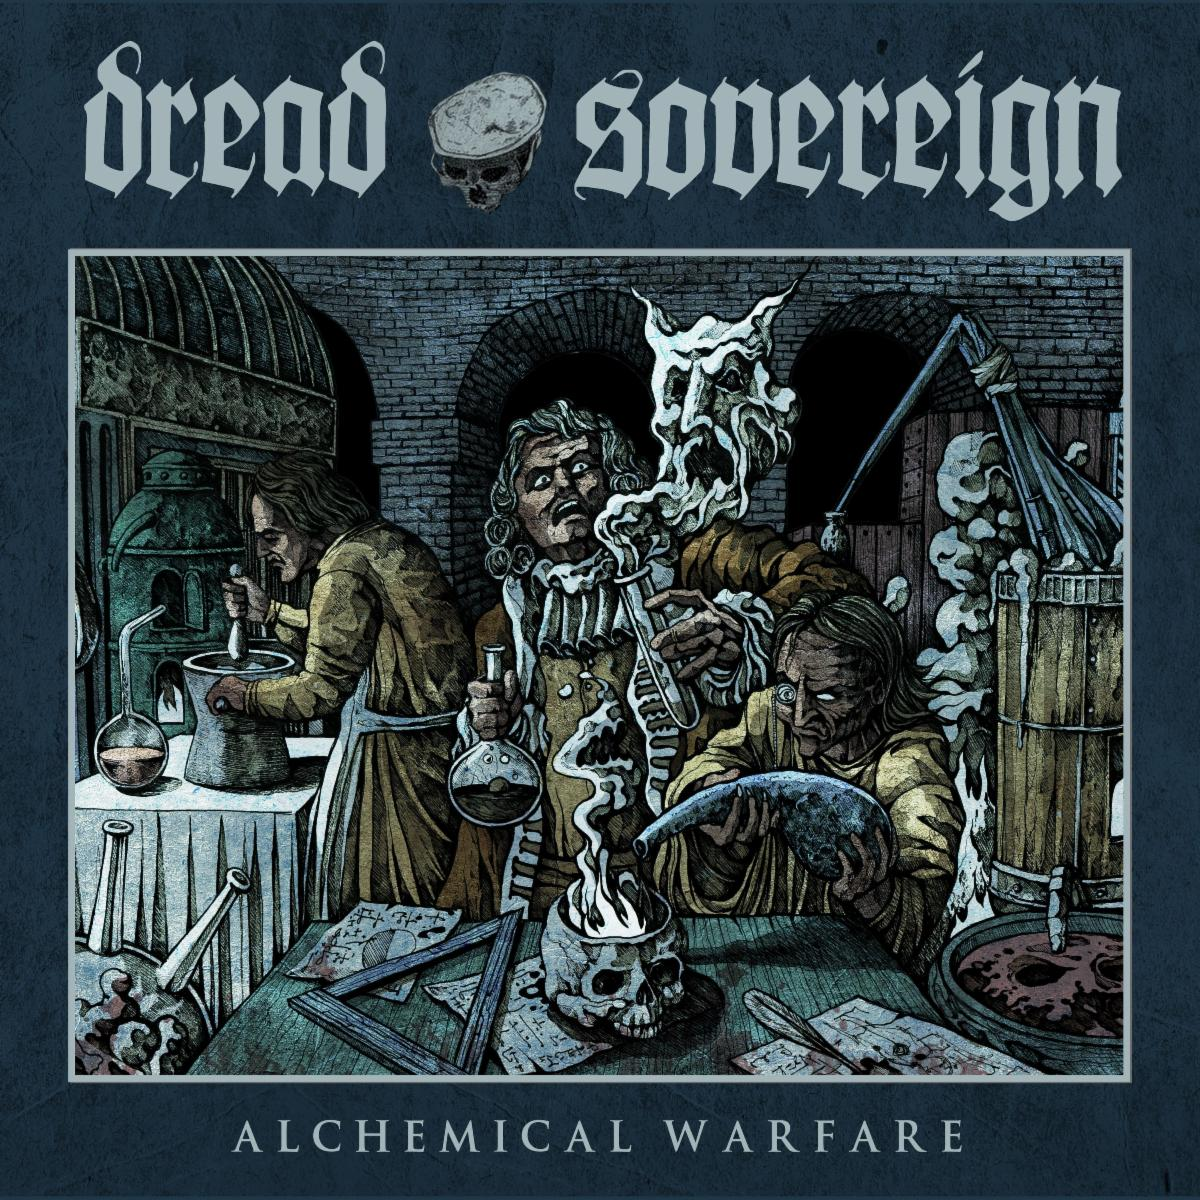 dread sovereign alchemical warfare